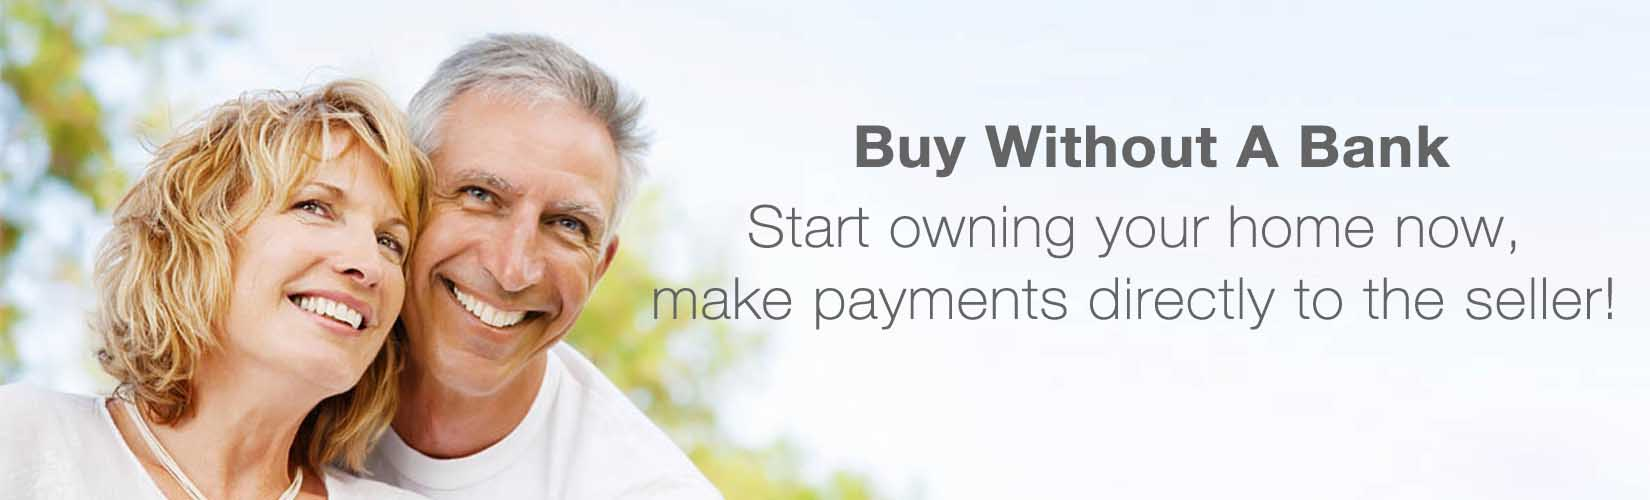 https://buywithoutabank.com.au/images/banner/FS_banner3.jpg